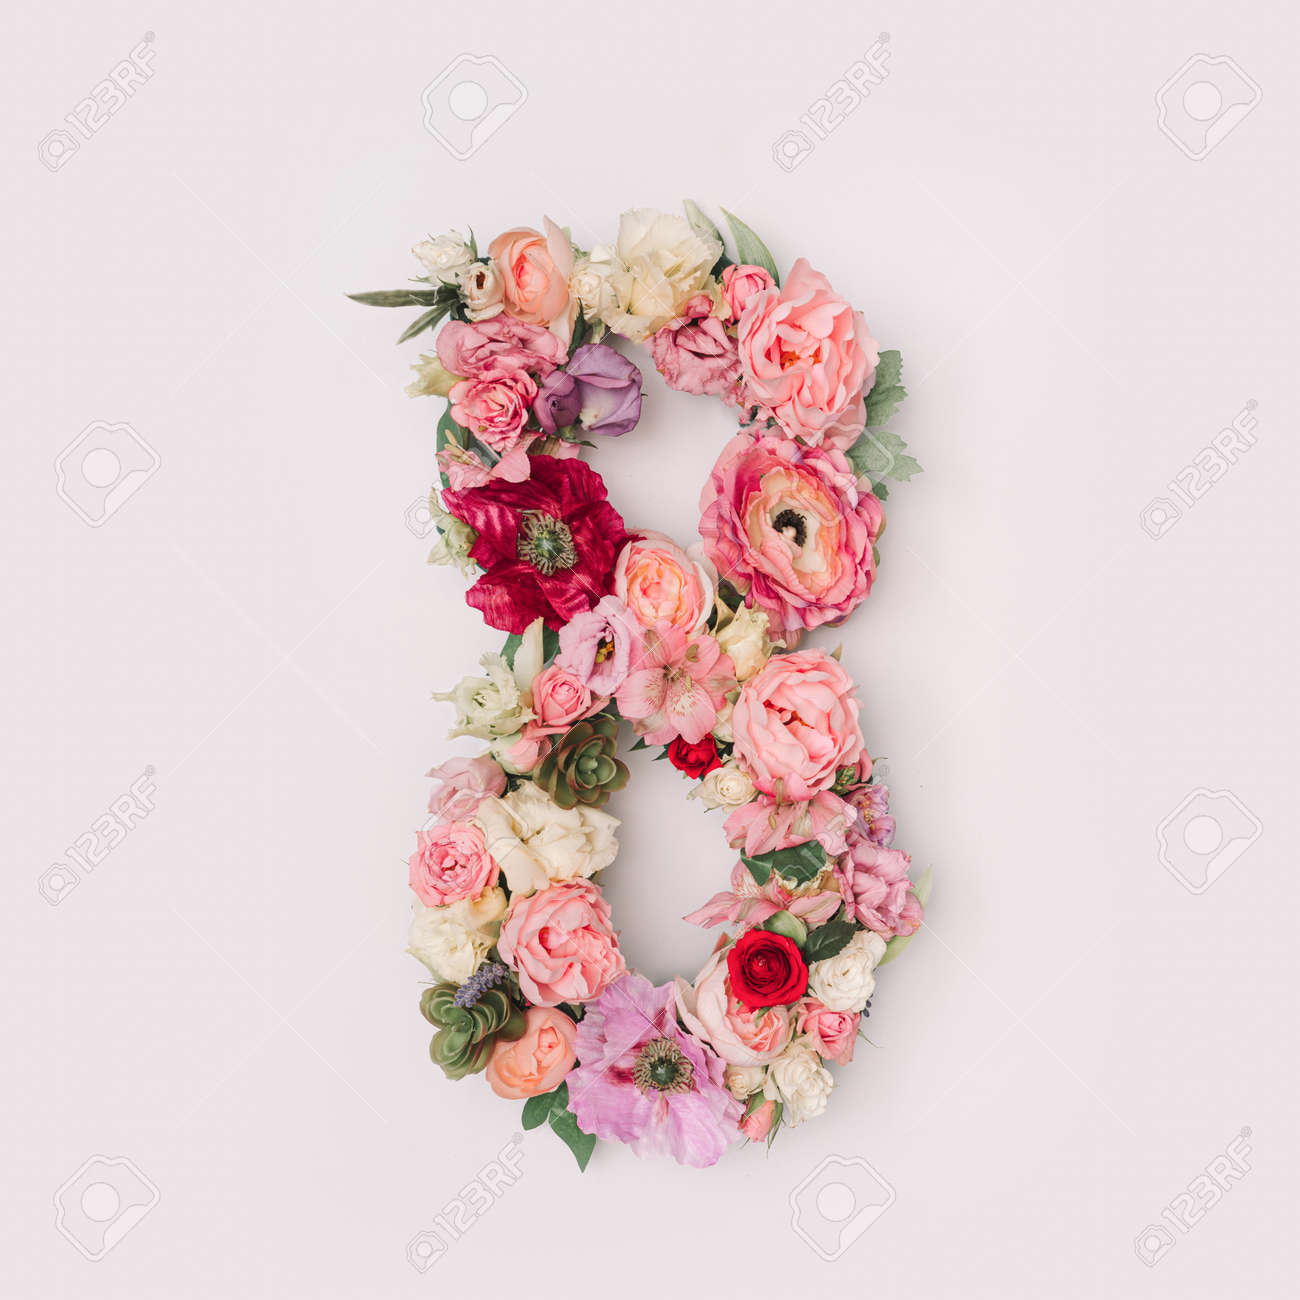 Number 8 made of real natural flowers and leaves. Flower font concept. Unique collection of letters and numbers. Spring, summer and valentines creative idea. - 163345785